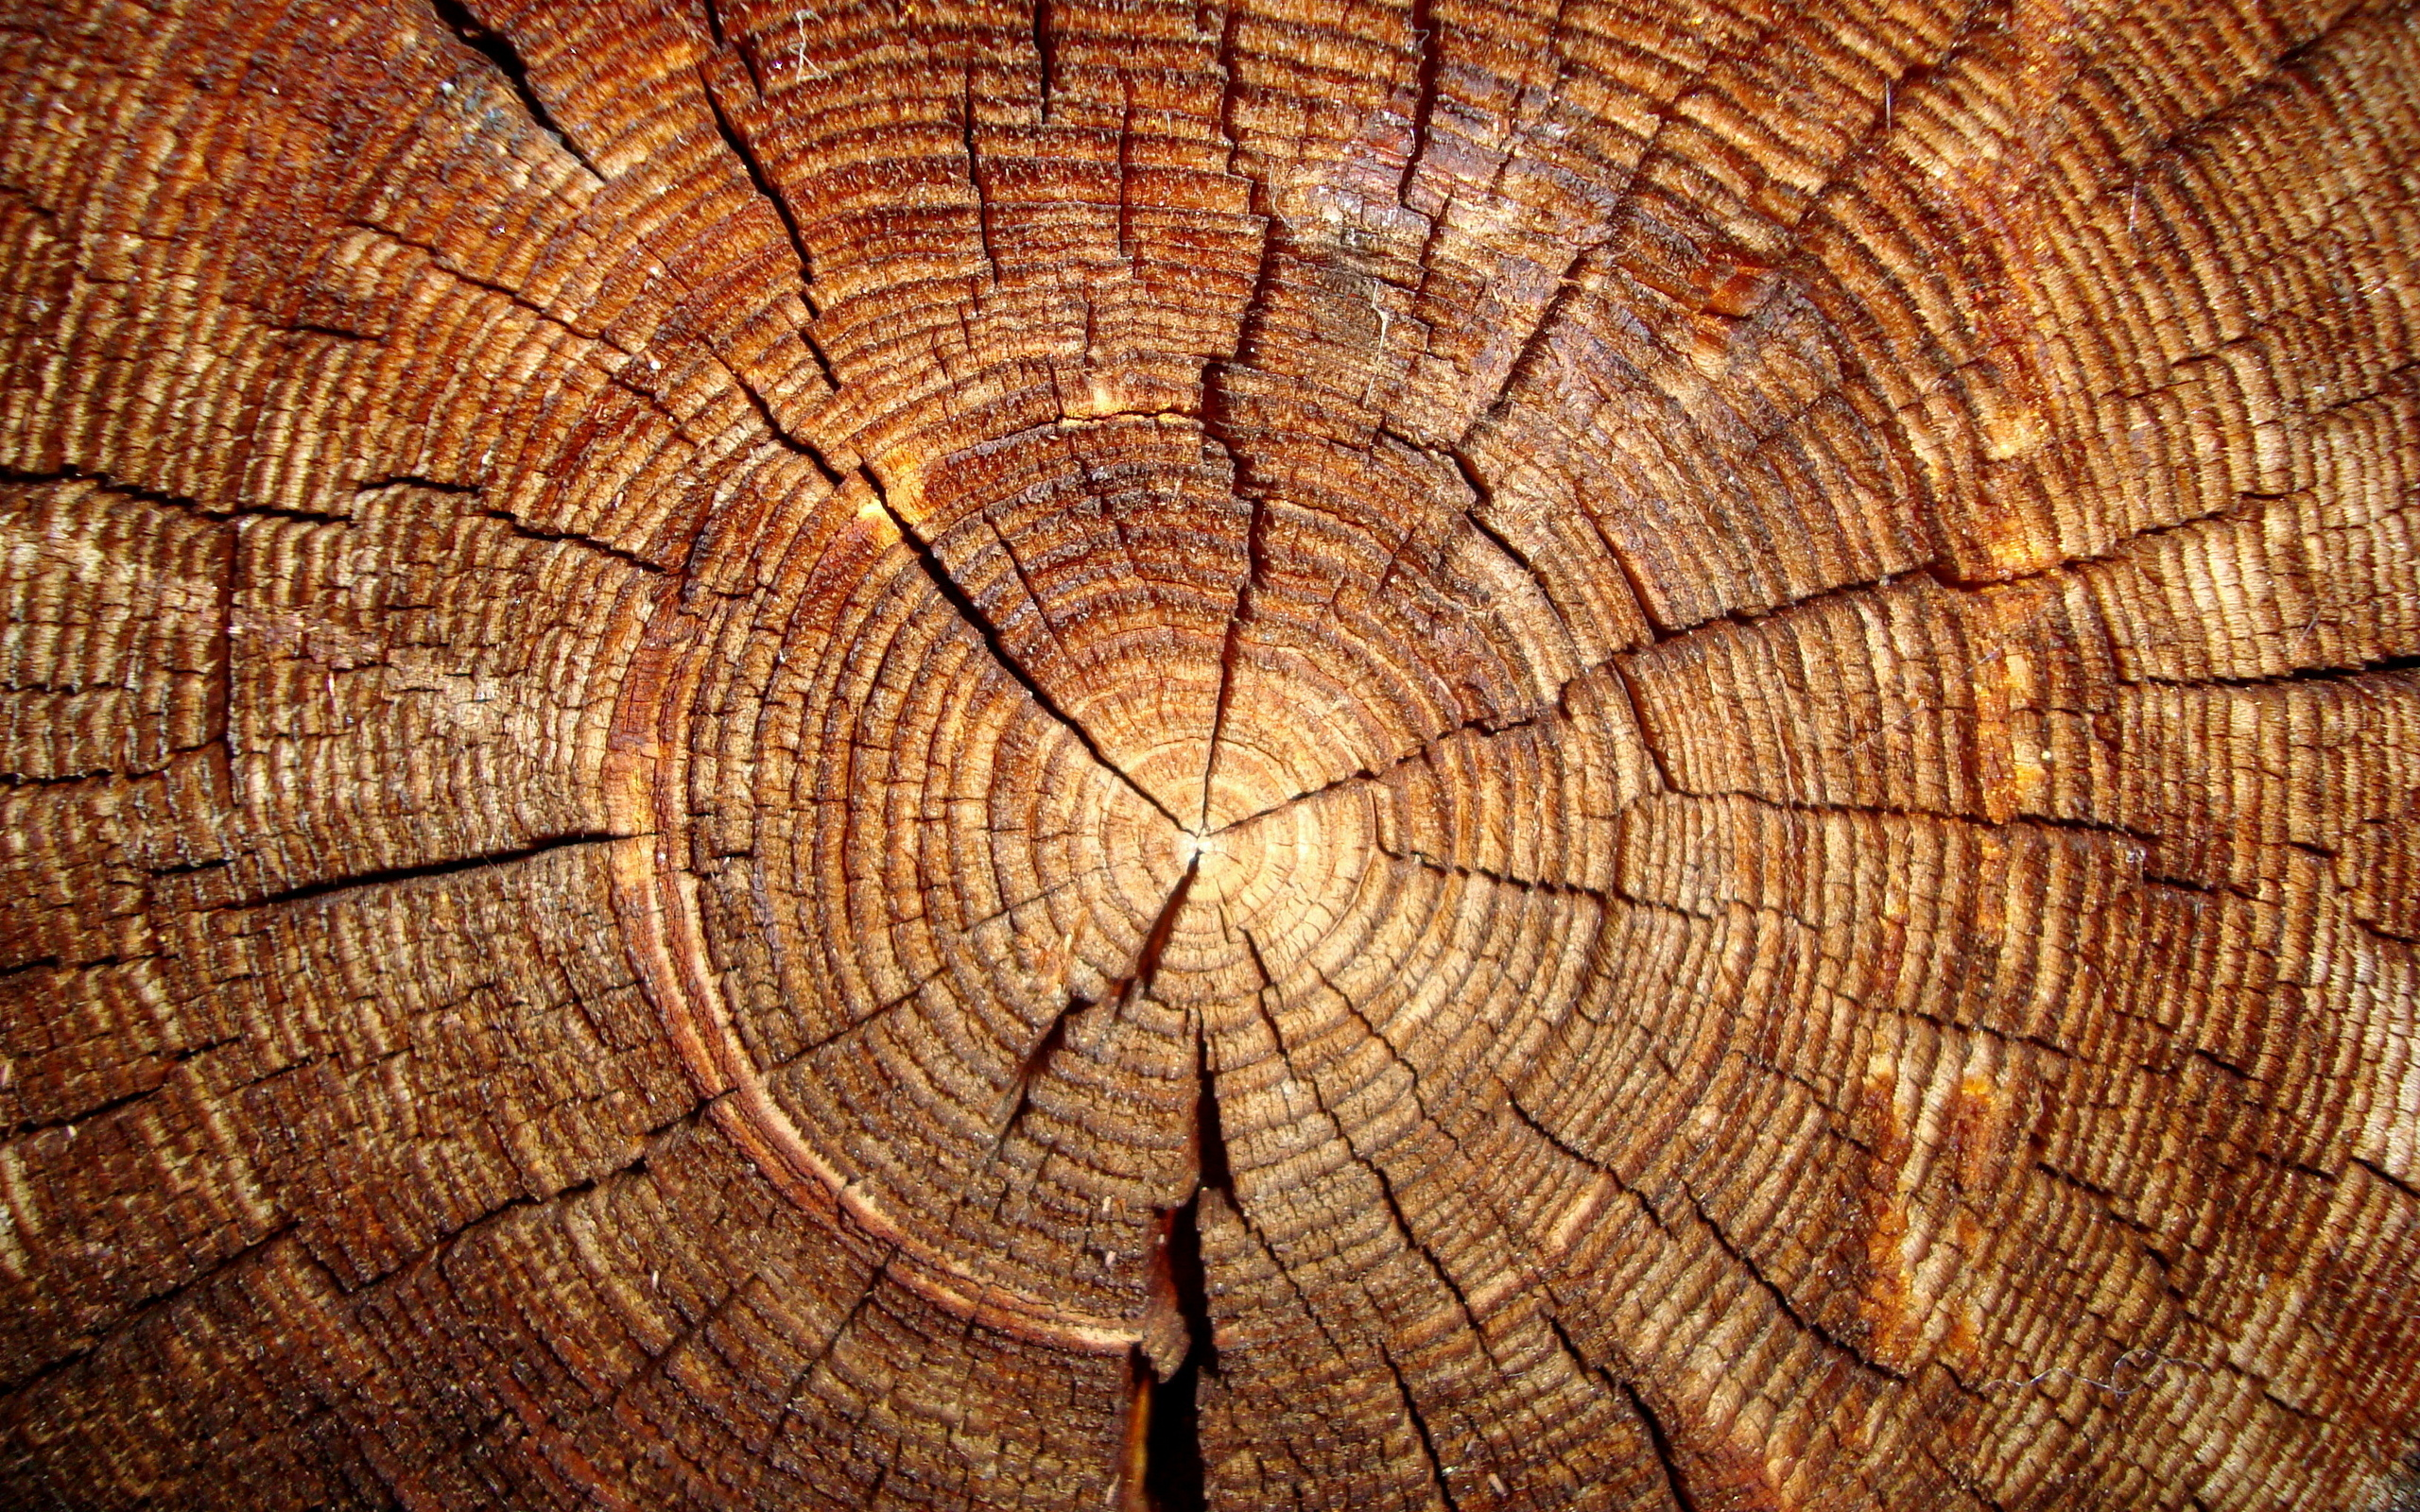 Wood hd wallpaper background image 2560x1600 id - Wallpaper holz ...